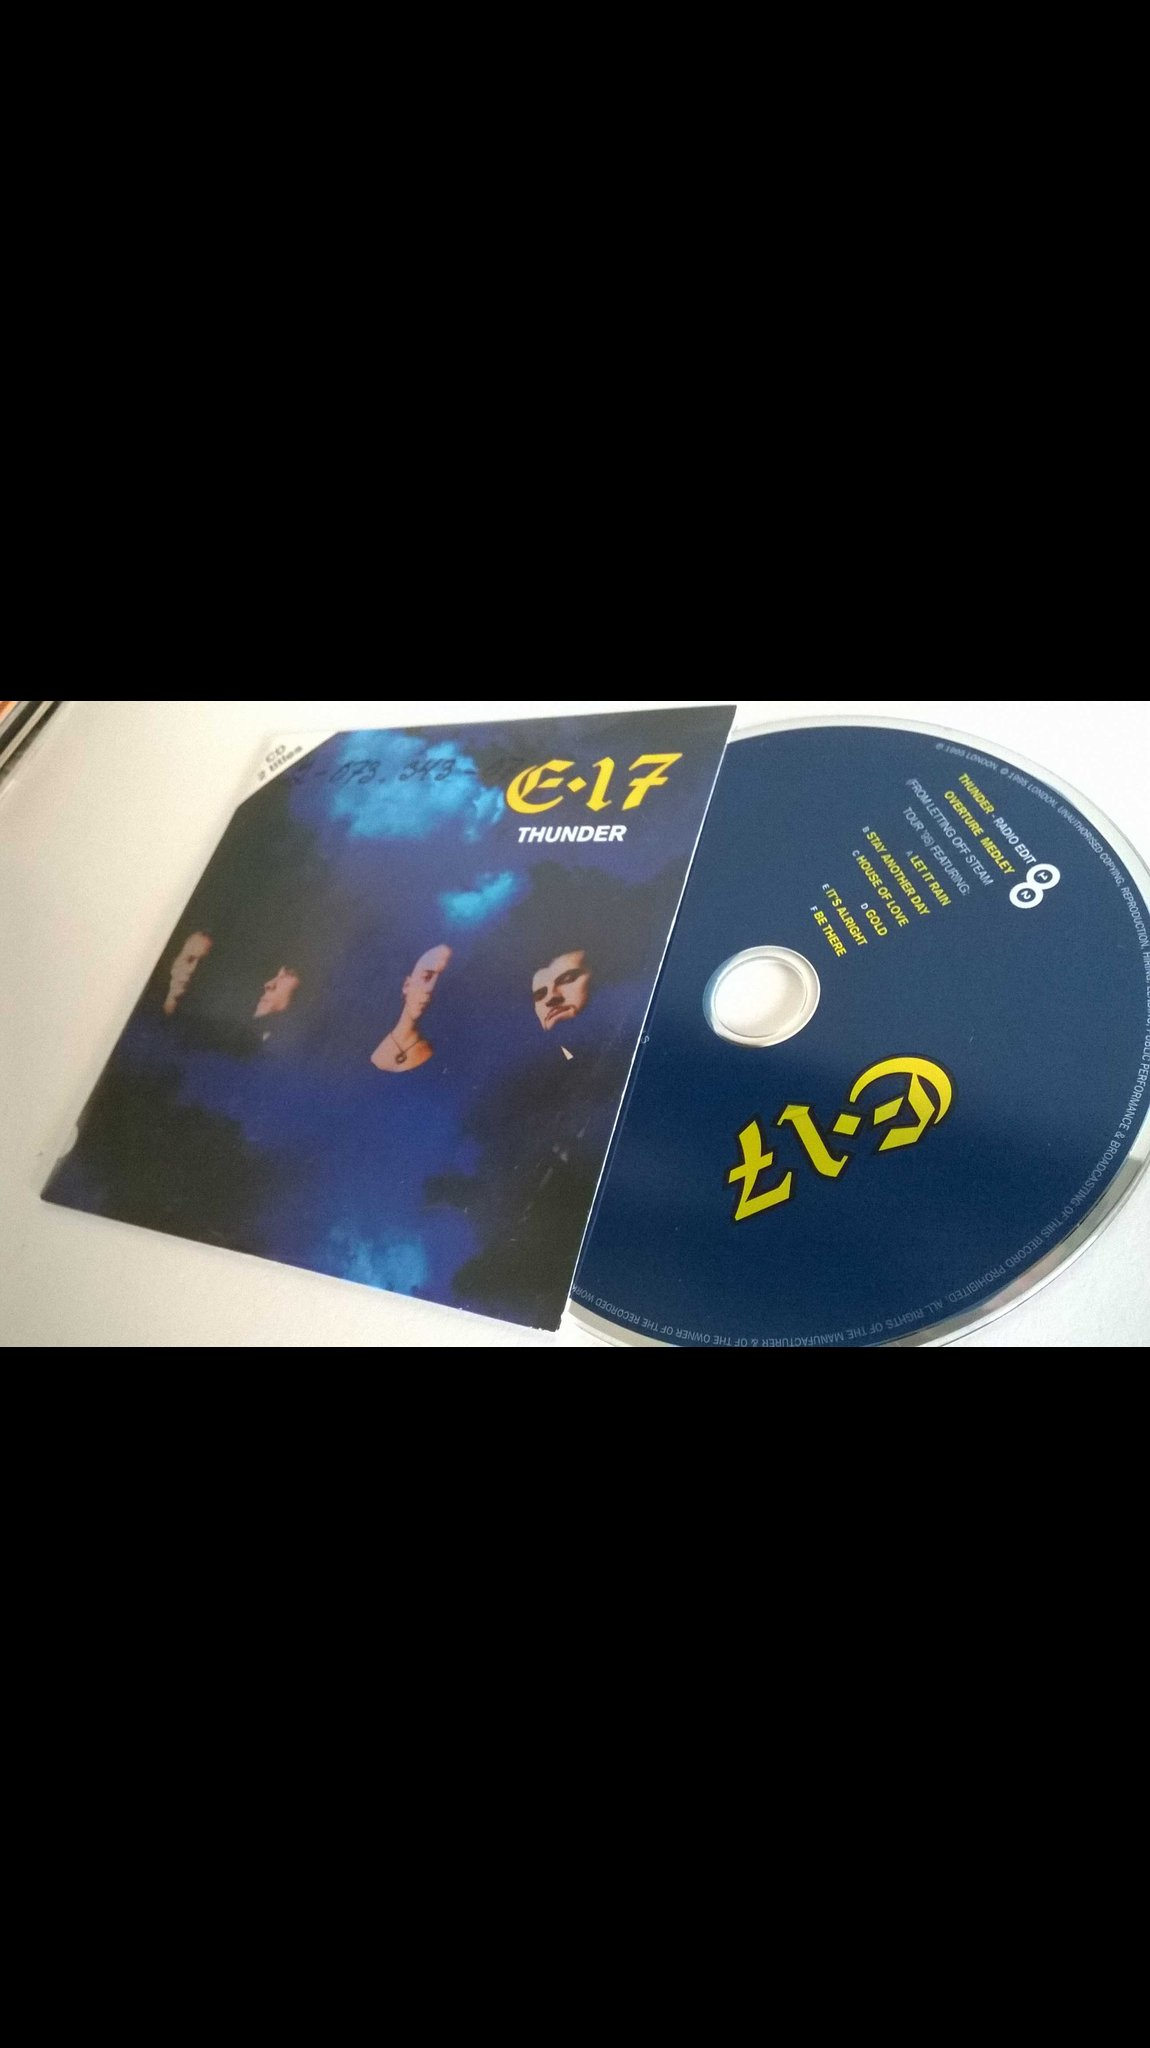 E17 - Thunder, single CD